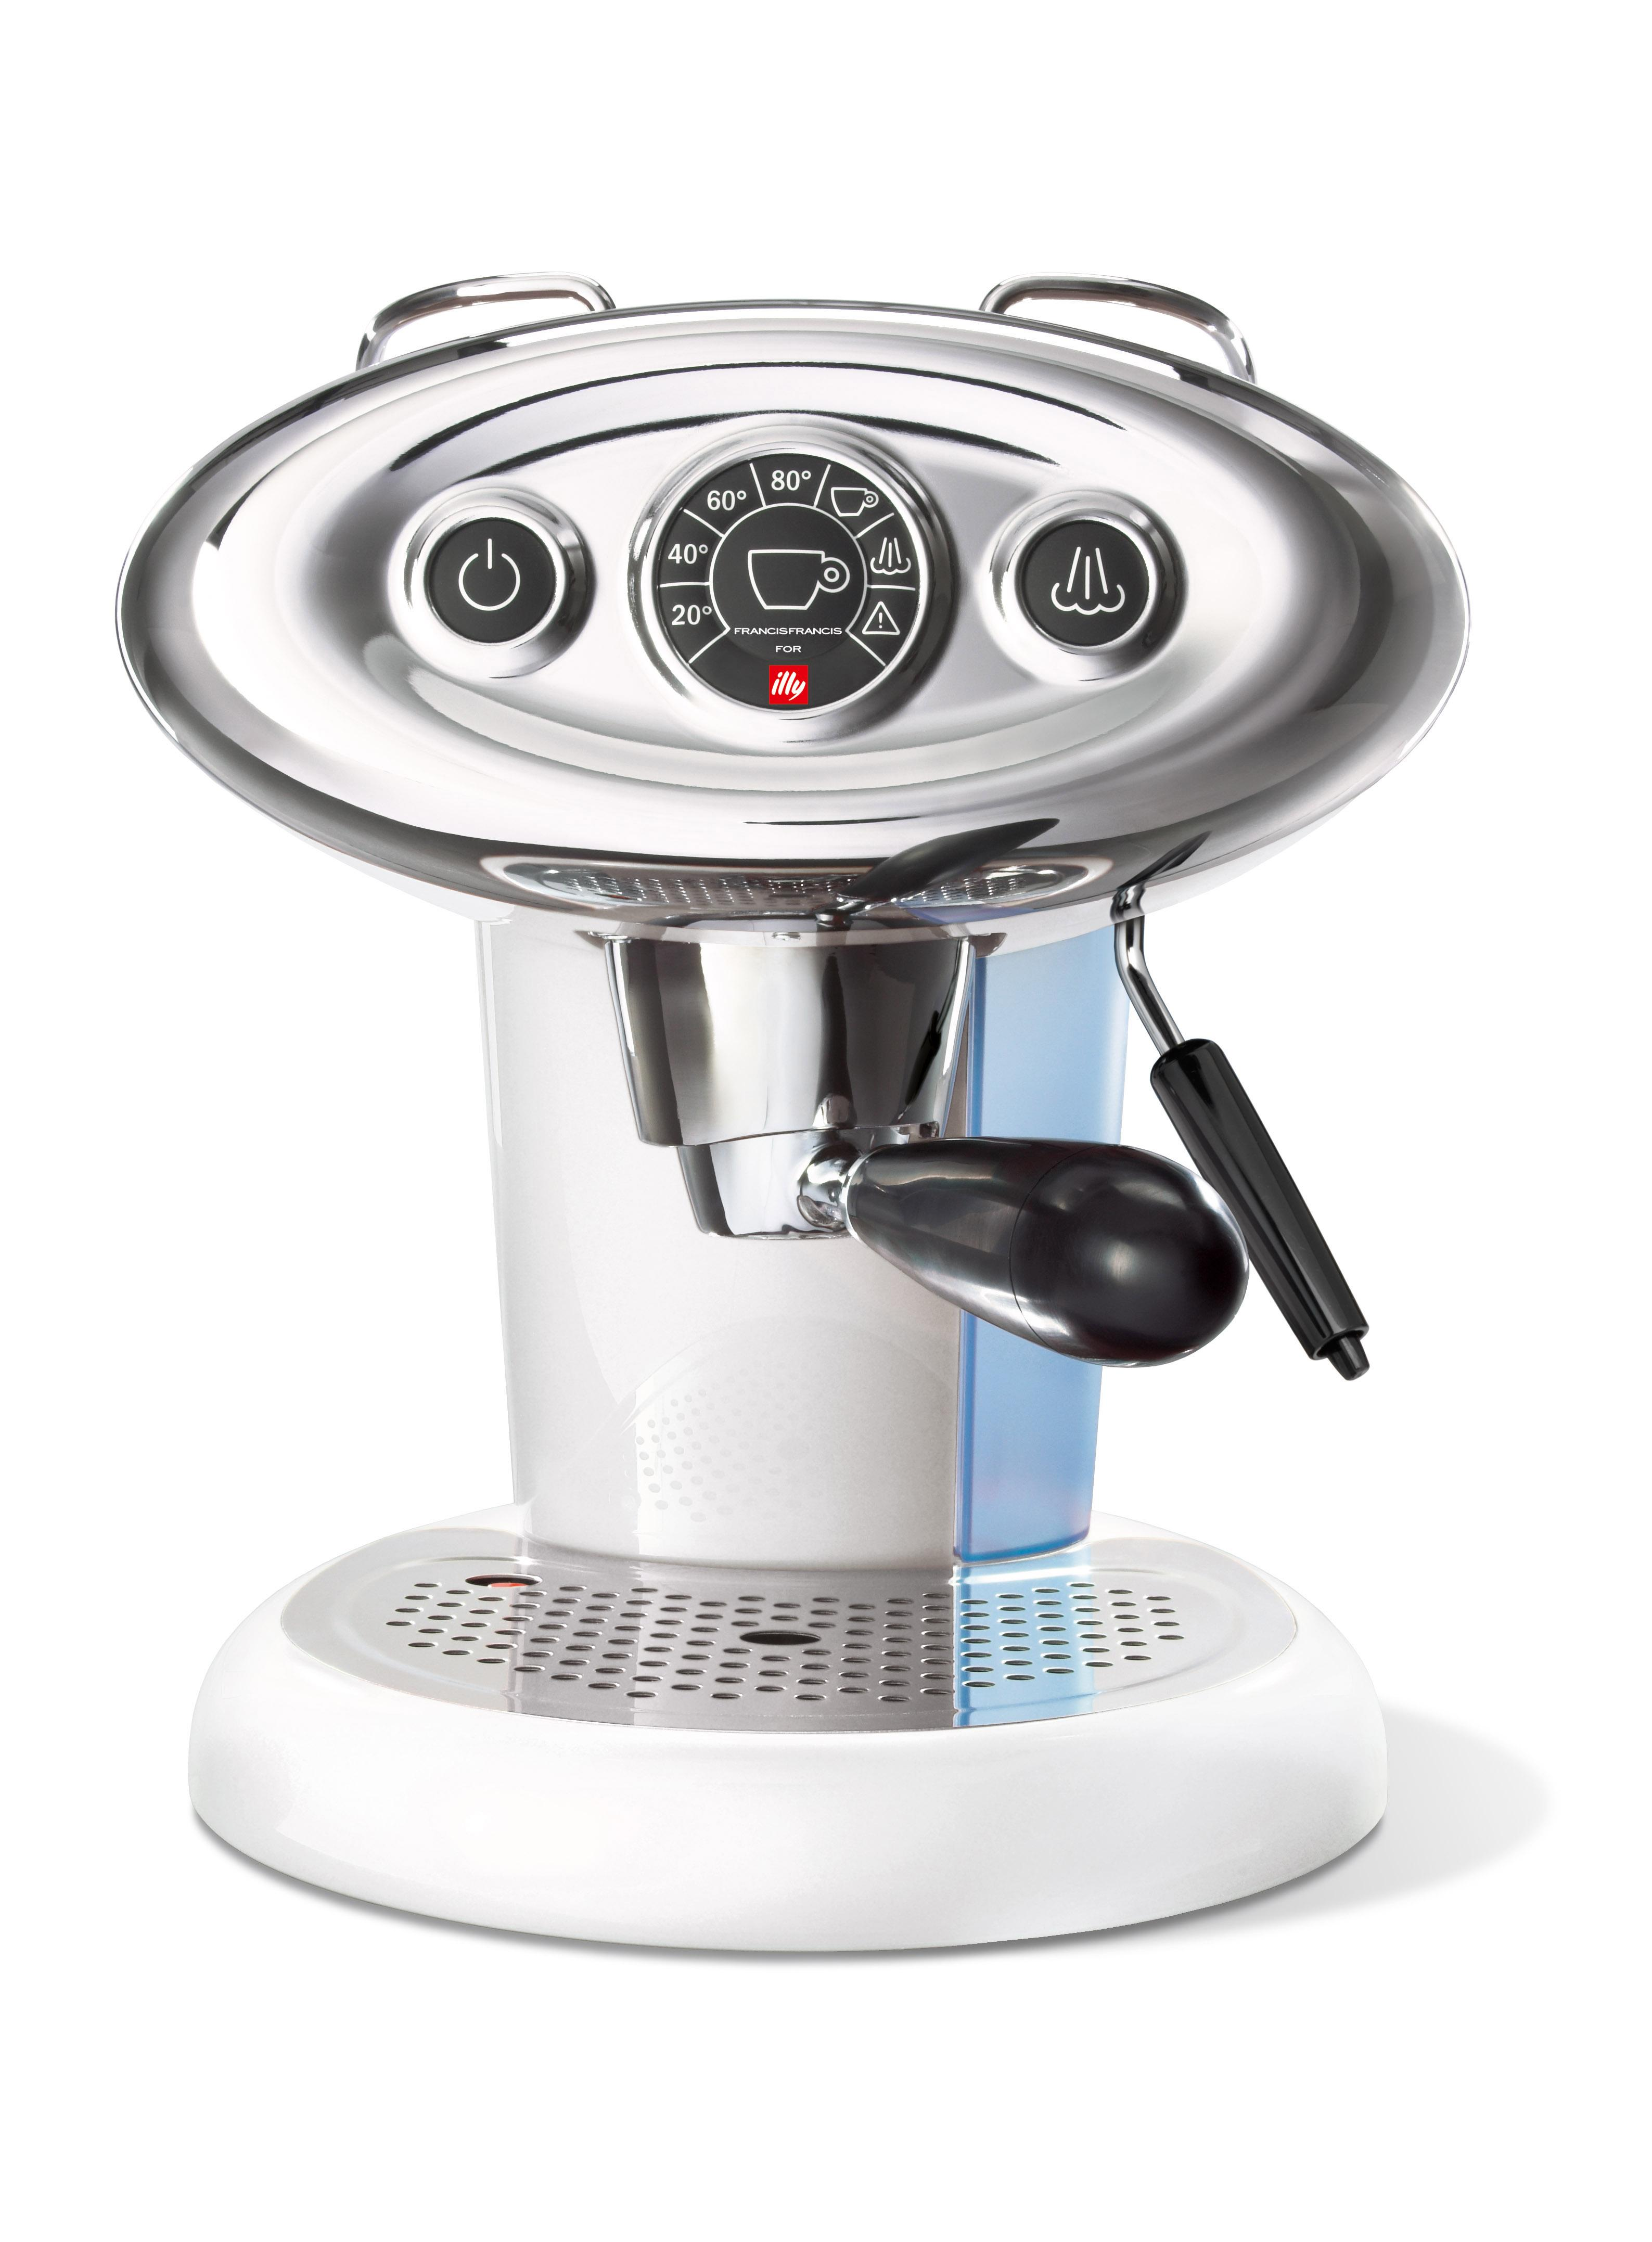 Francis Francis for Illy X7.1 Expresso Coffee Maker, White: Amazon ...